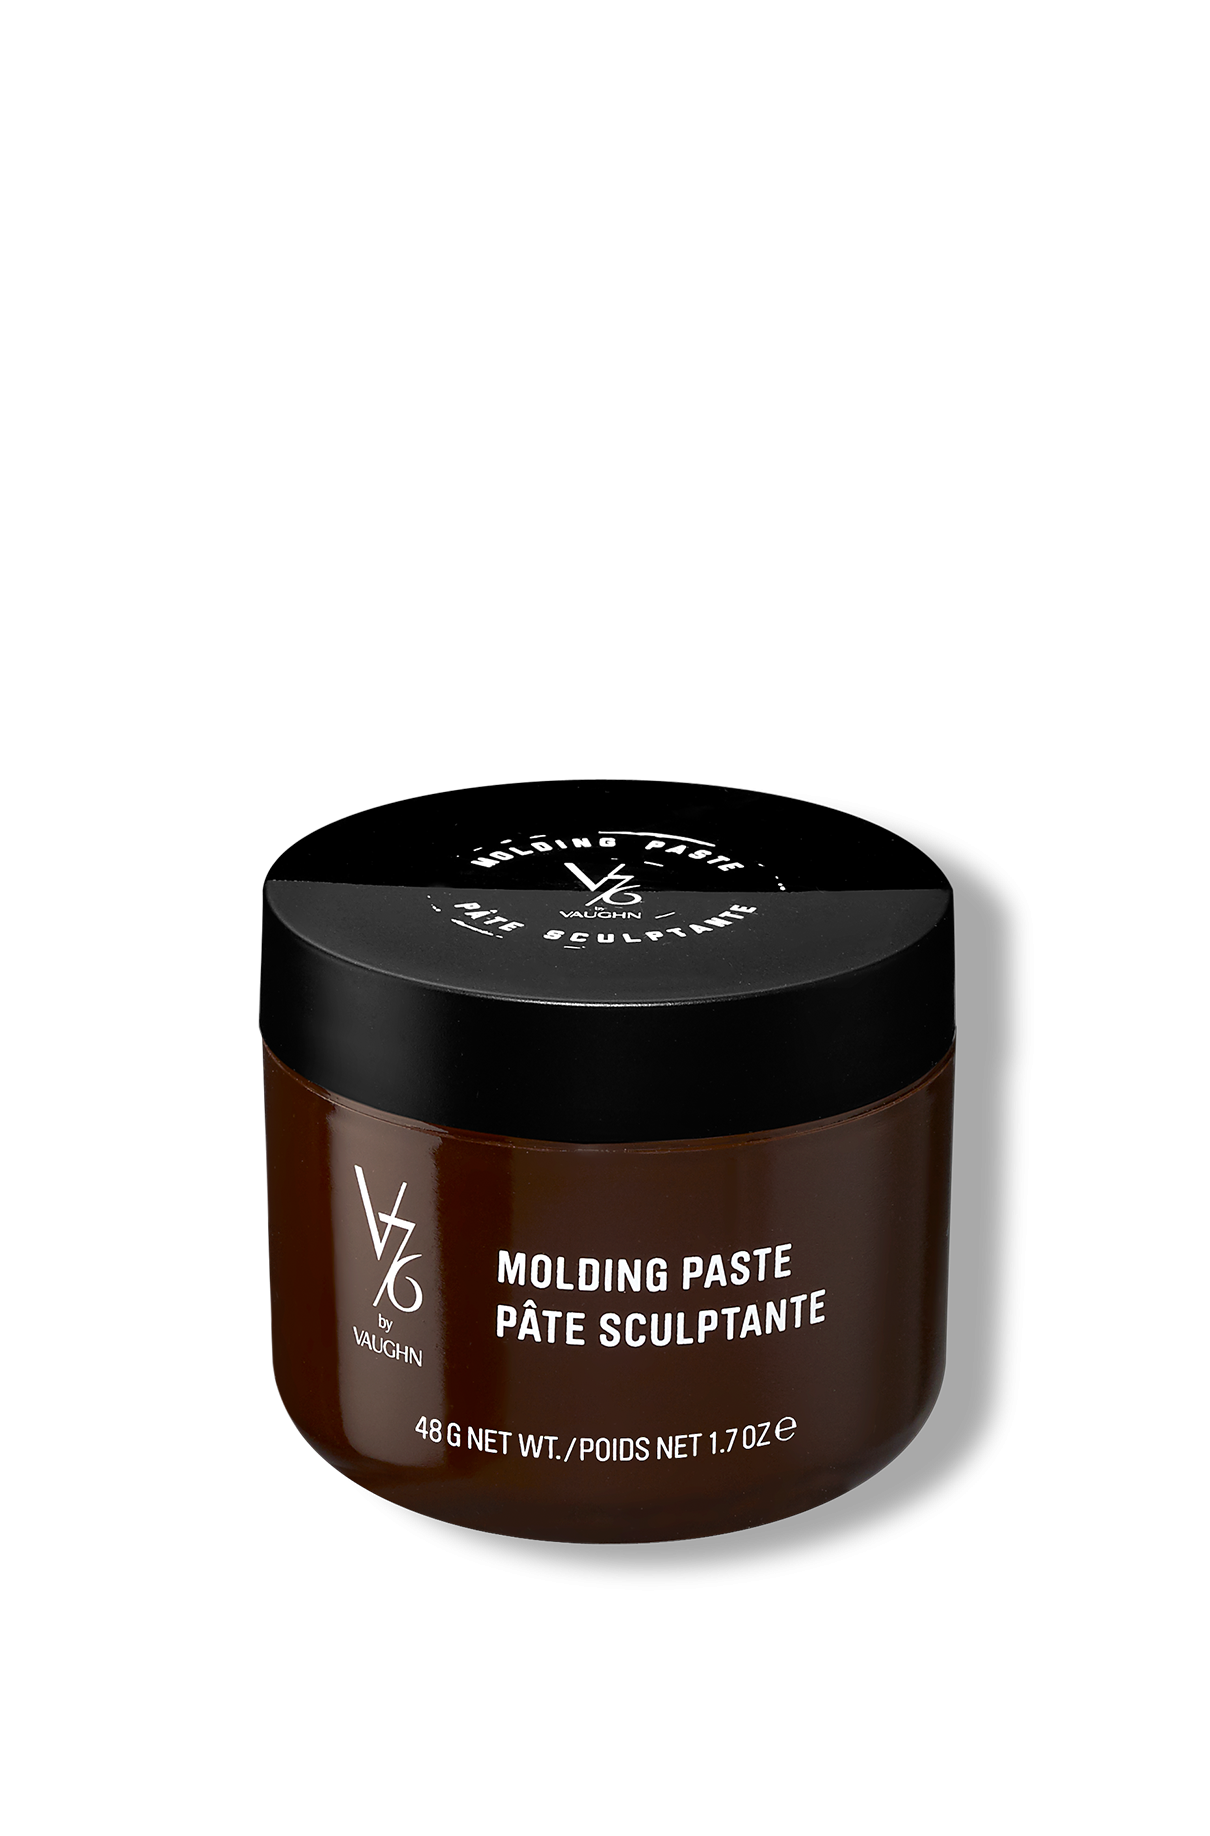 V76 by Vaughn  Molding Paste, 1.7 oz. $21.00